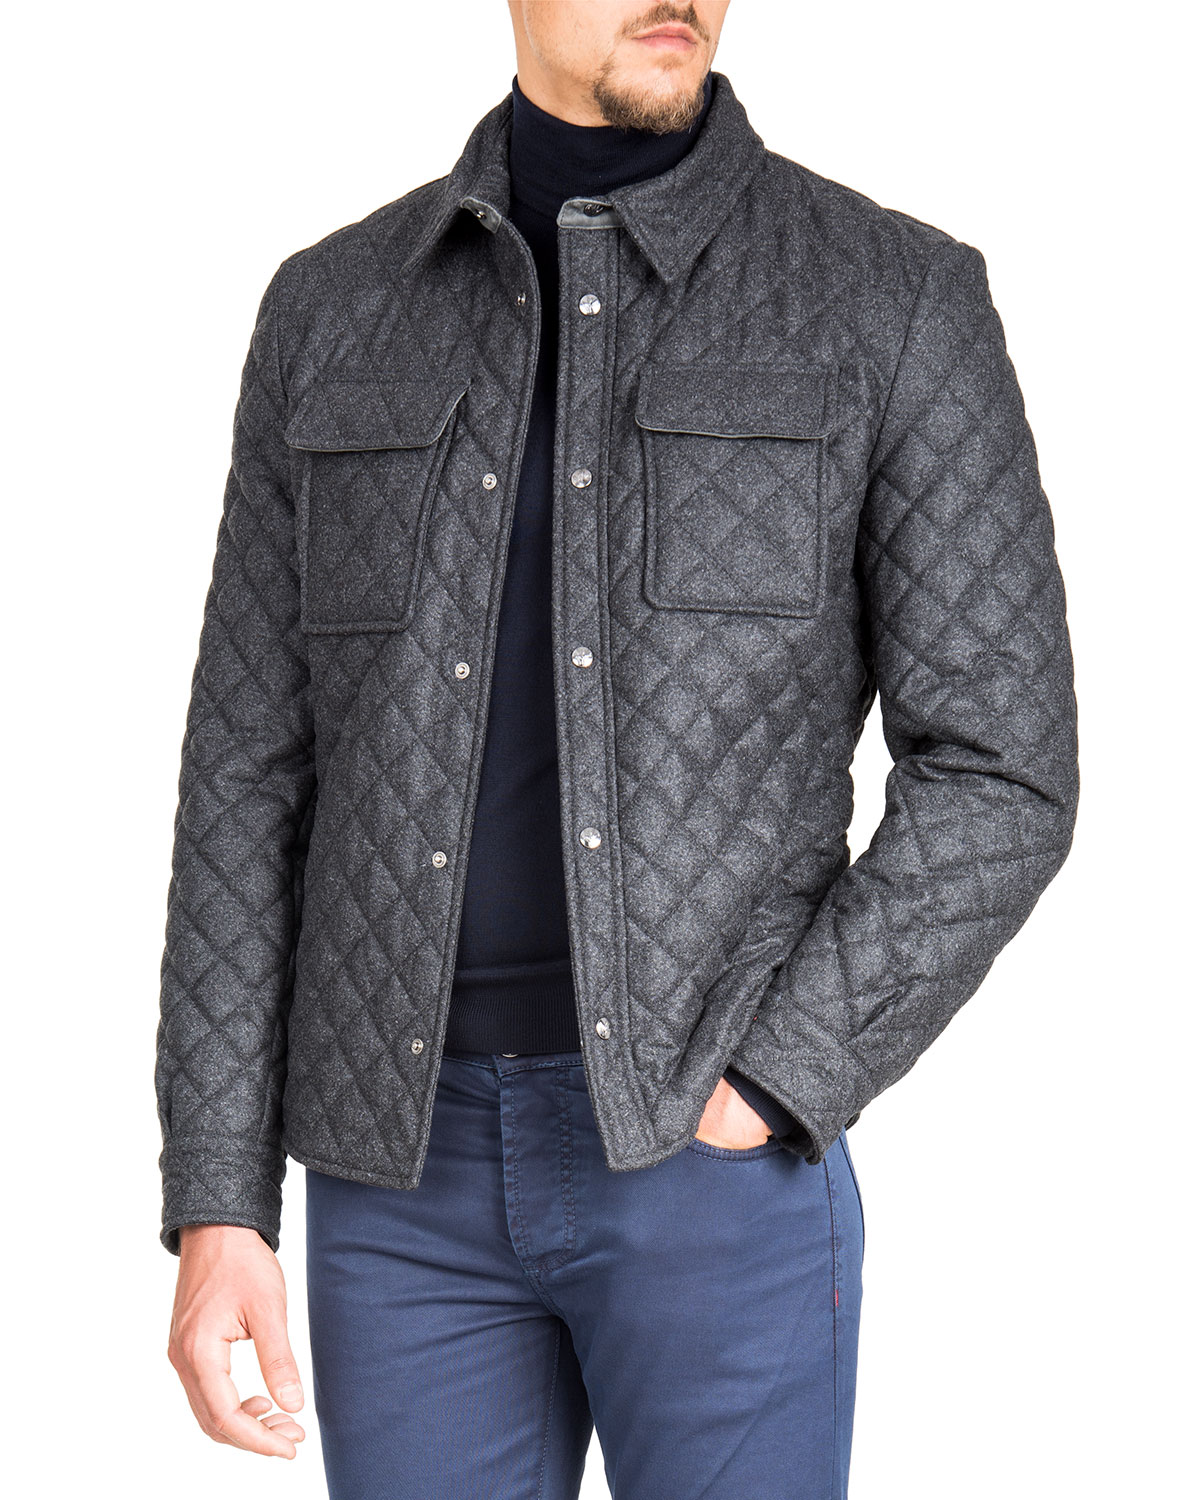 Isaia Mens Quilted Snap Front Shirt Jacket Neiman Marcus